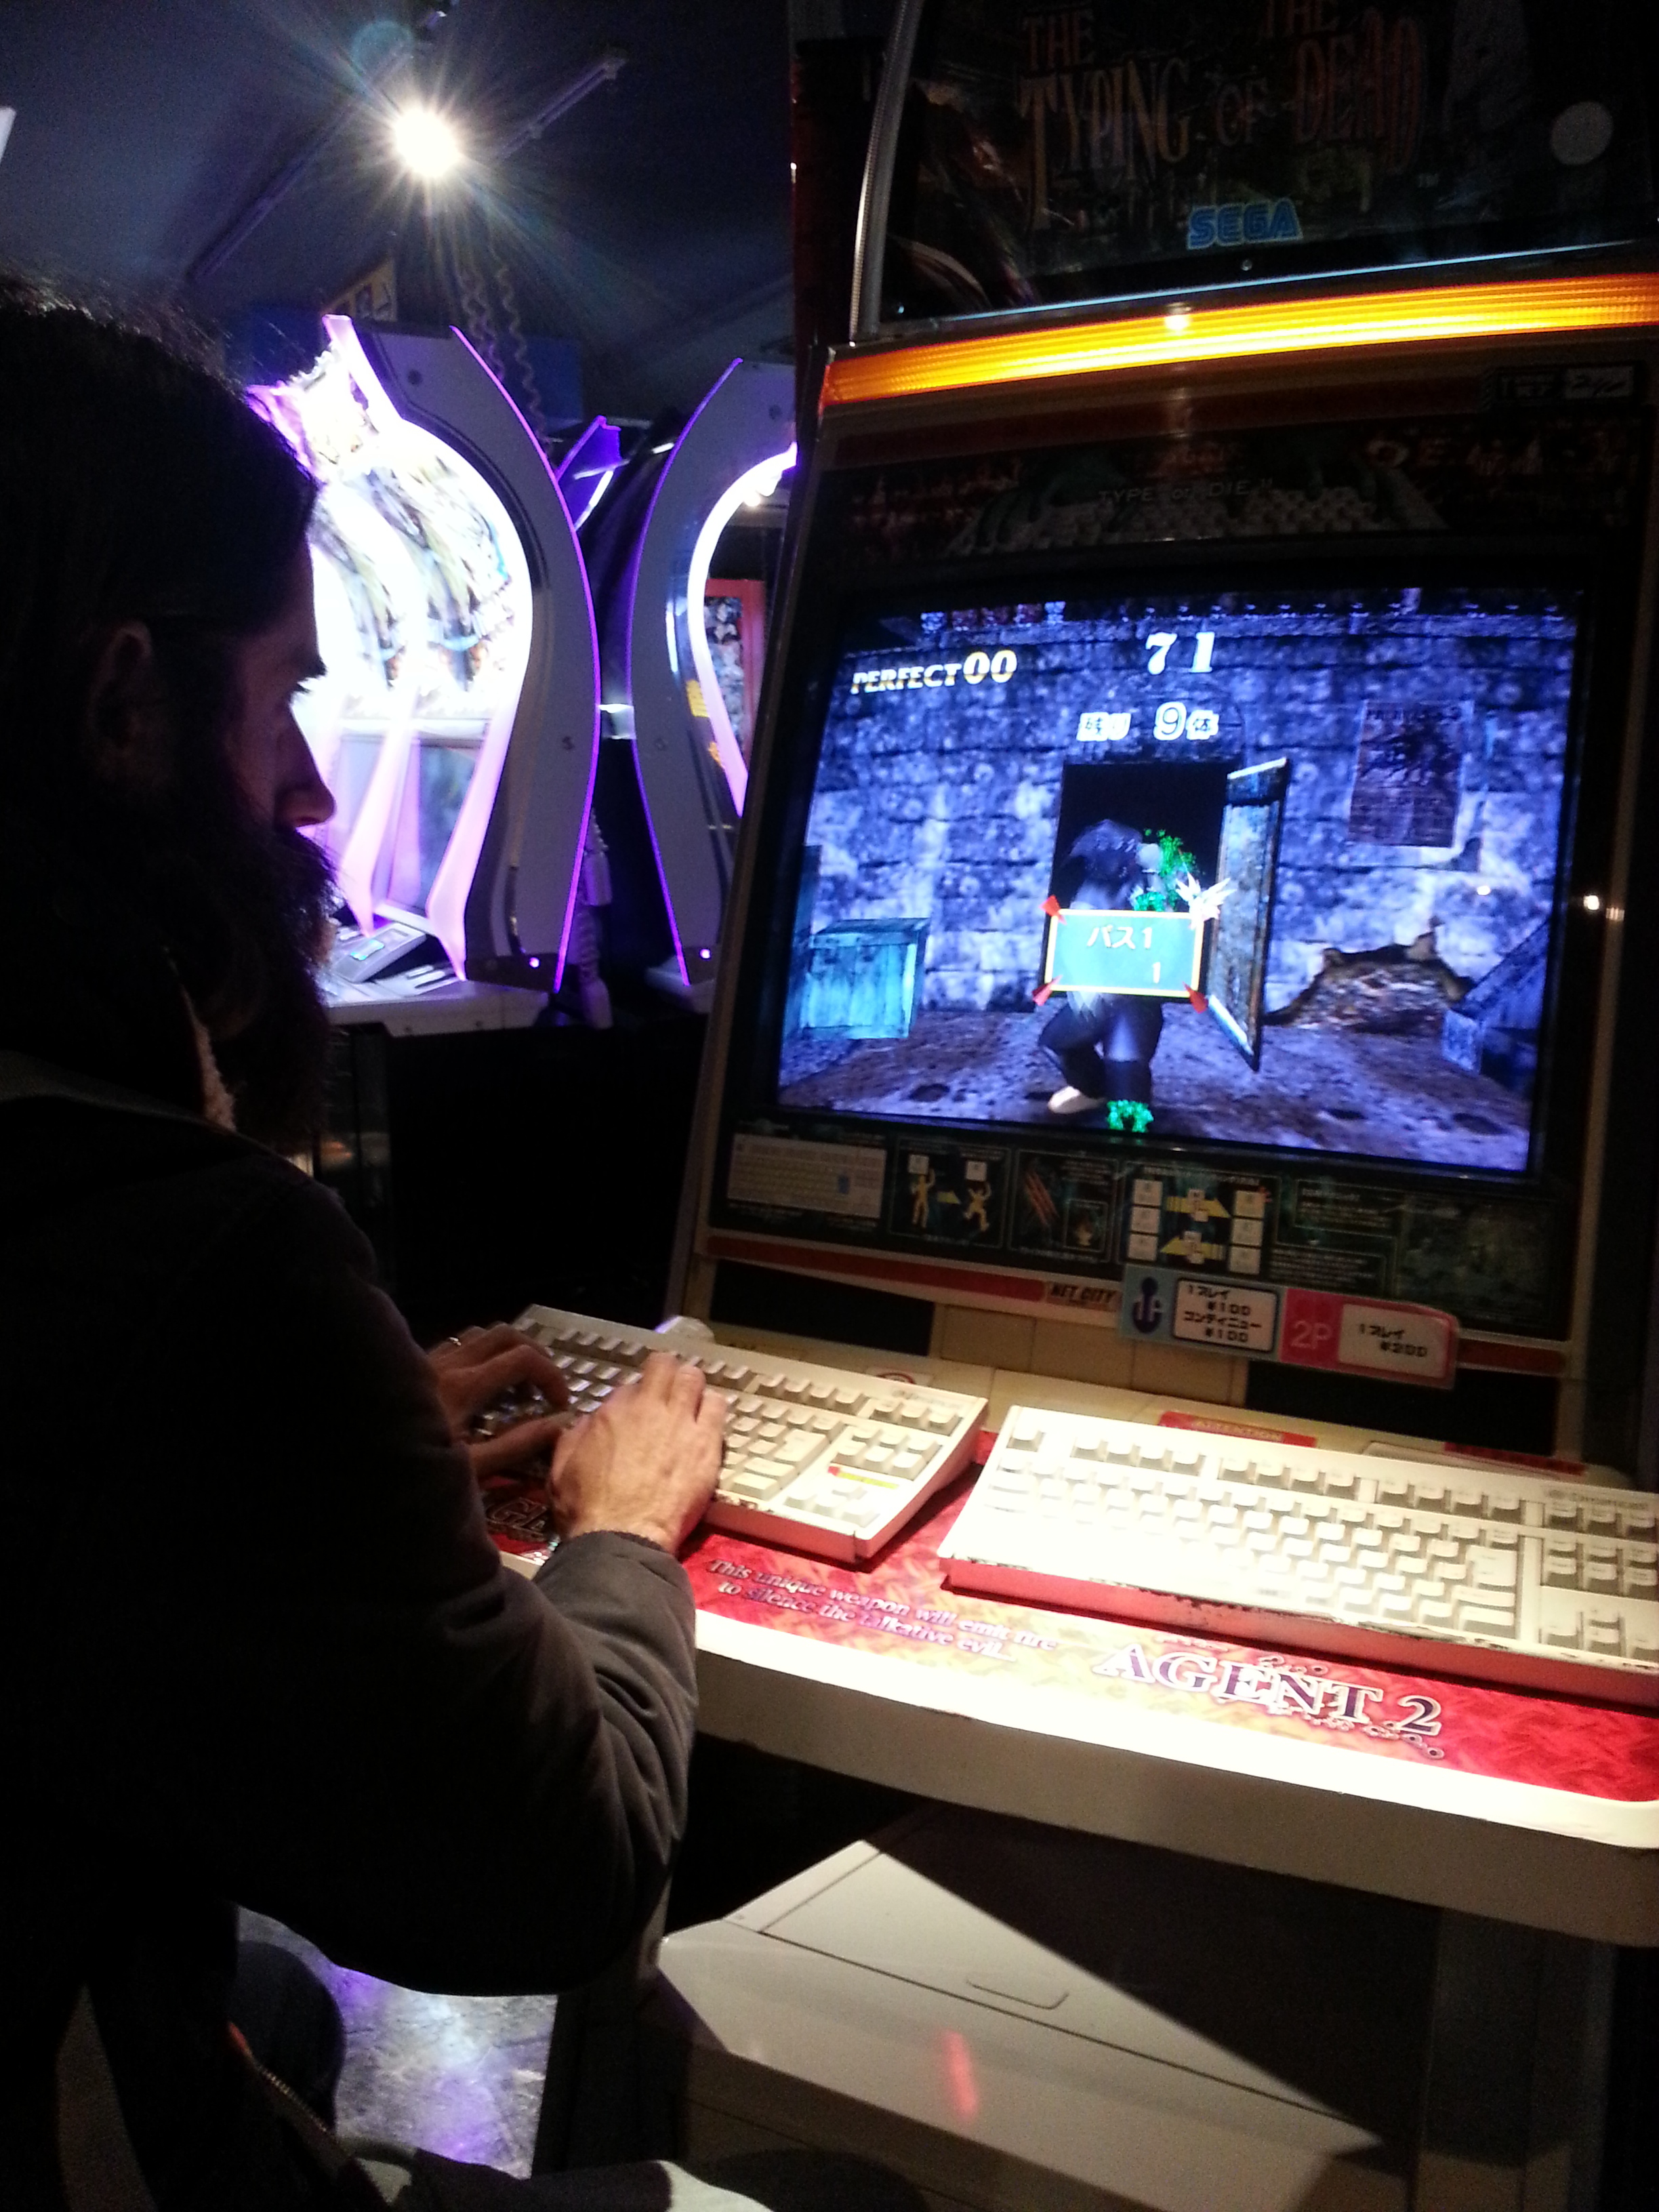 Played Video Games at Club Sega in Akihabara all night  Cost: ??? The coins were flowing and we didn't track it.